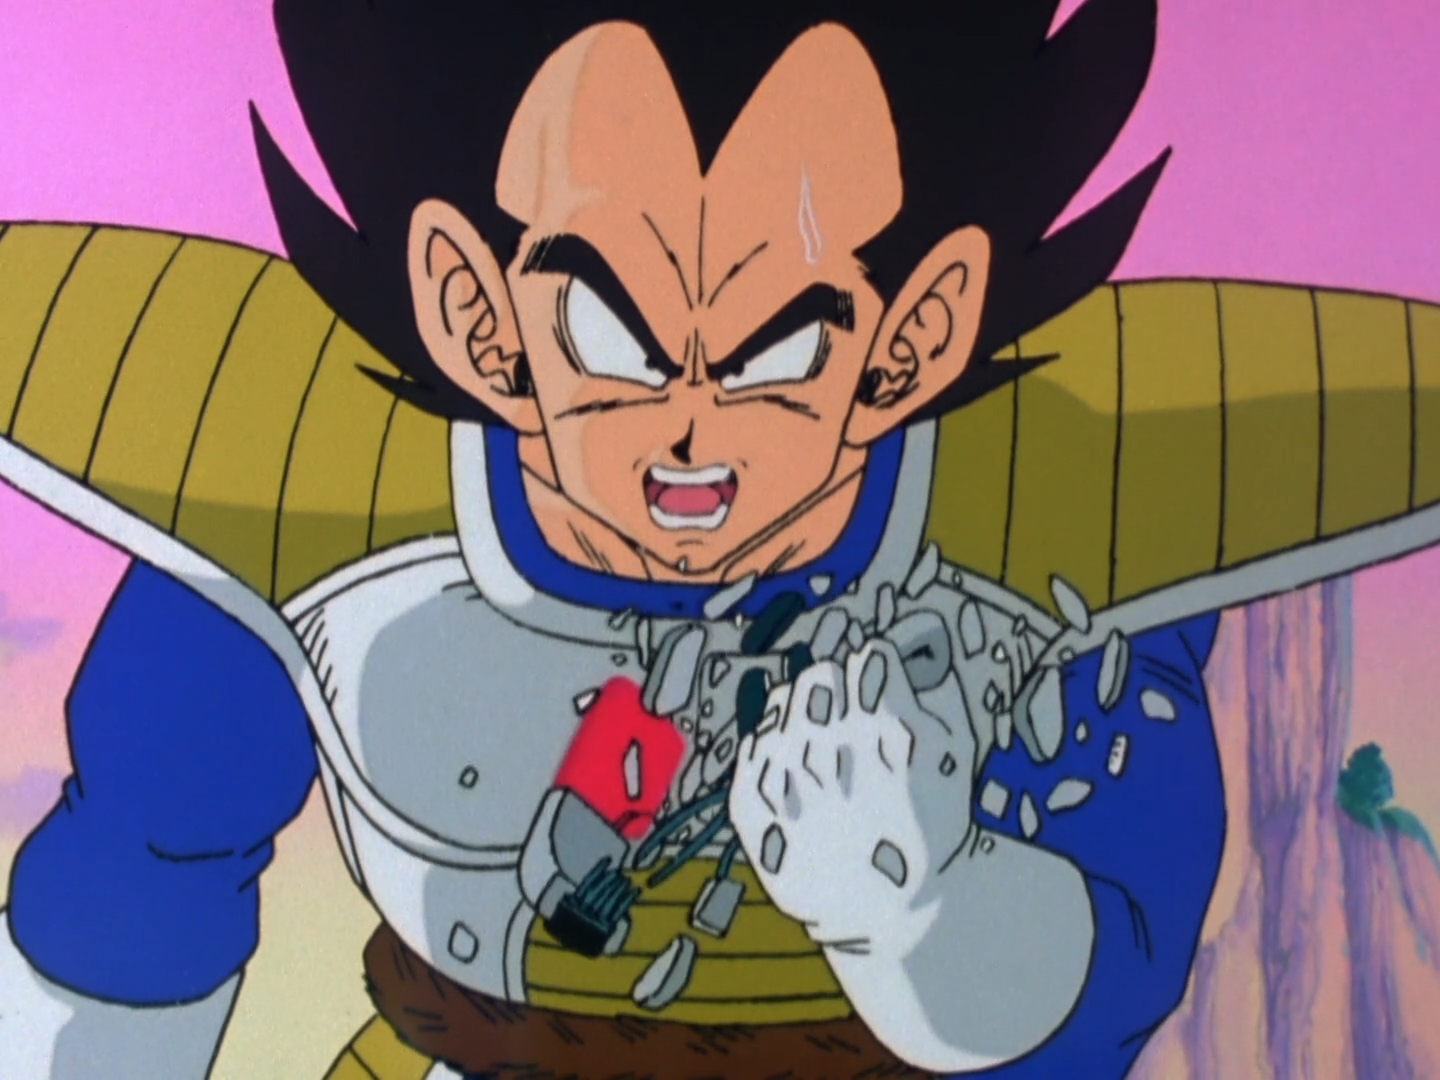 File:VegetaItsOver9000-02.png